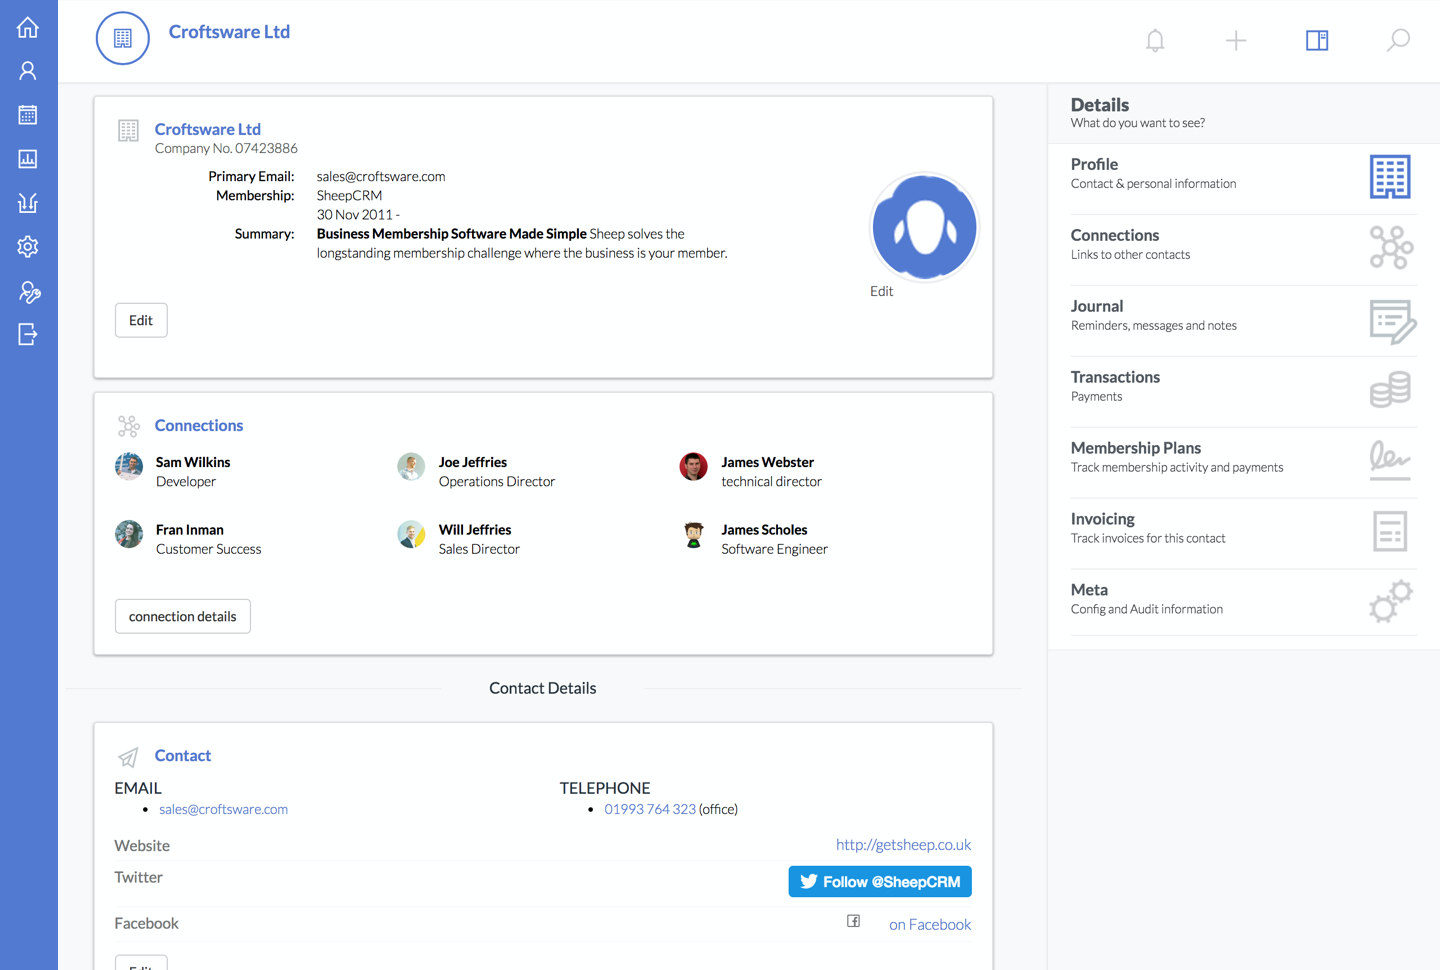 SheepCRM screenshot: Sheep solves the longstanding membership challenge where the business is your member.